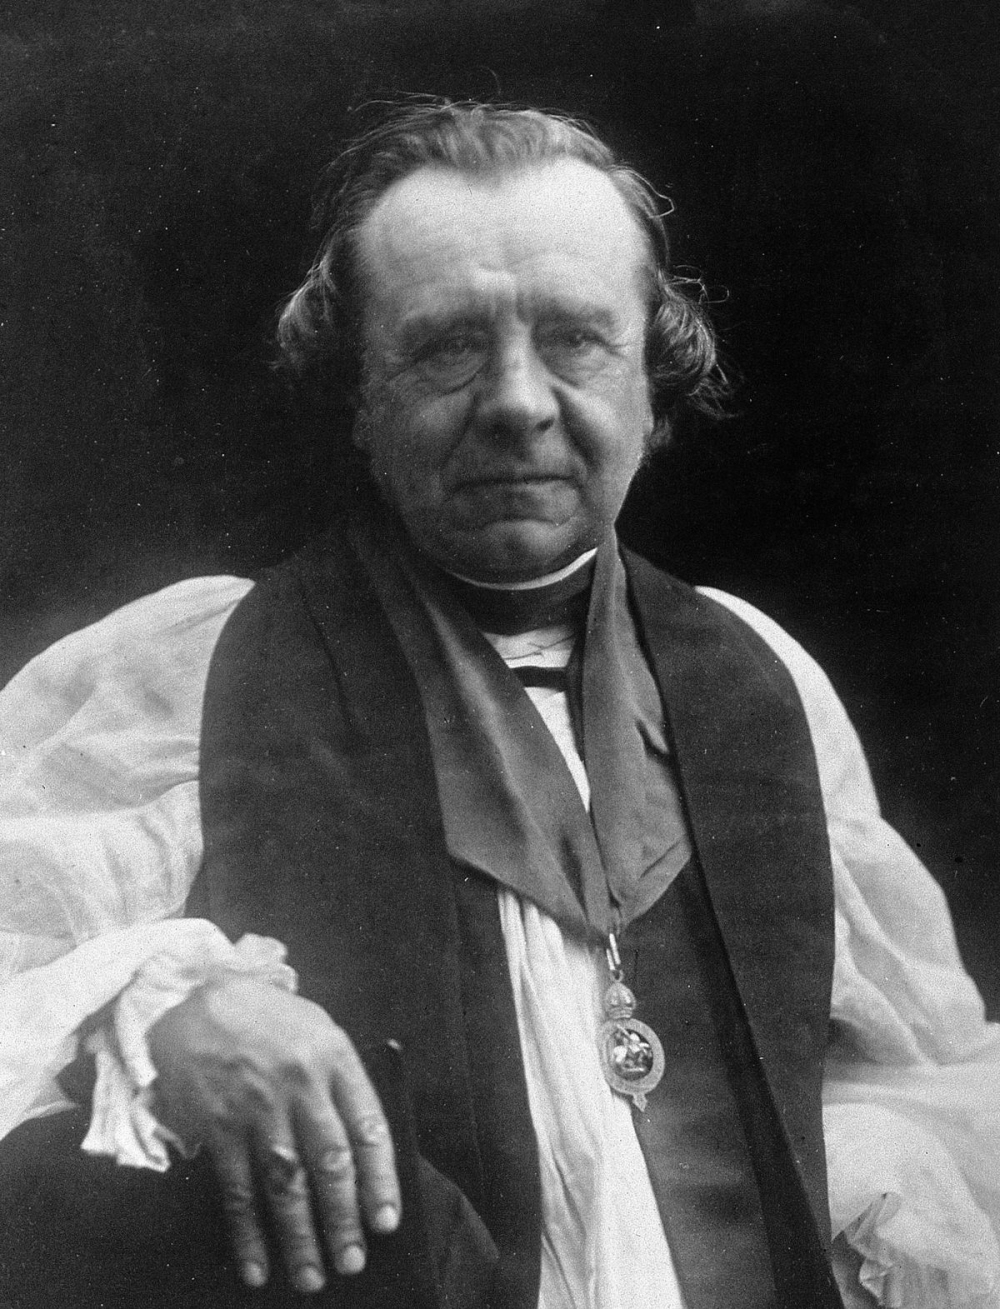 Bishop Wilberforce